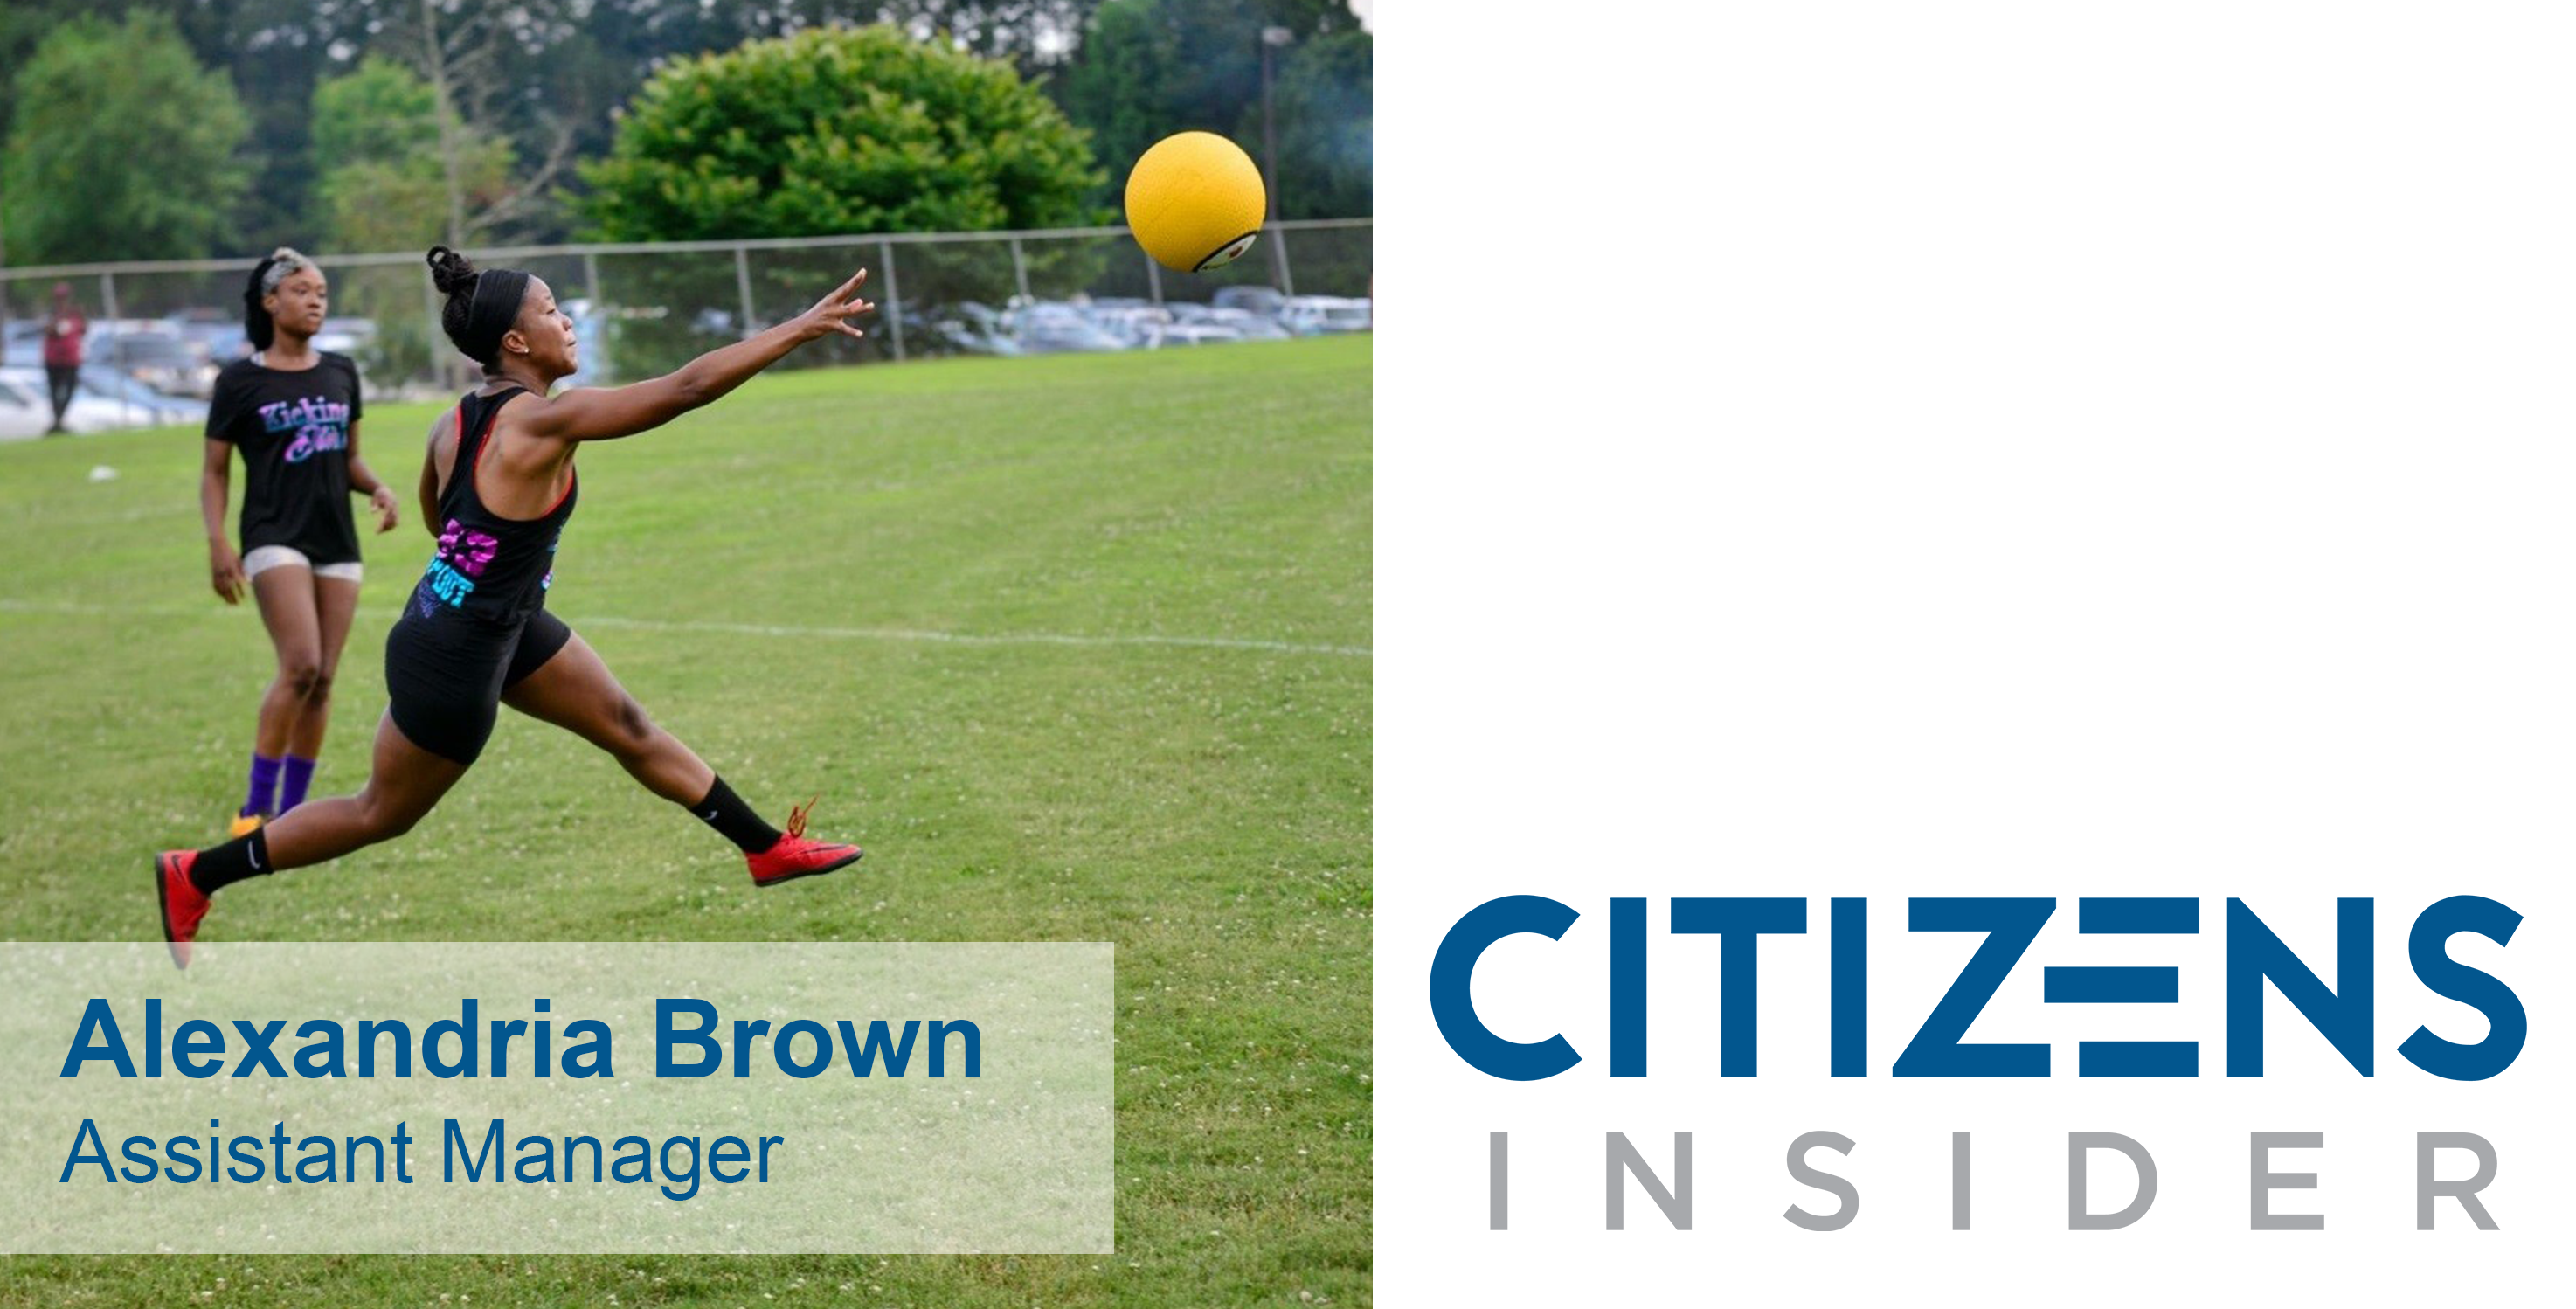 Citizens Insider: Alexandria Brown